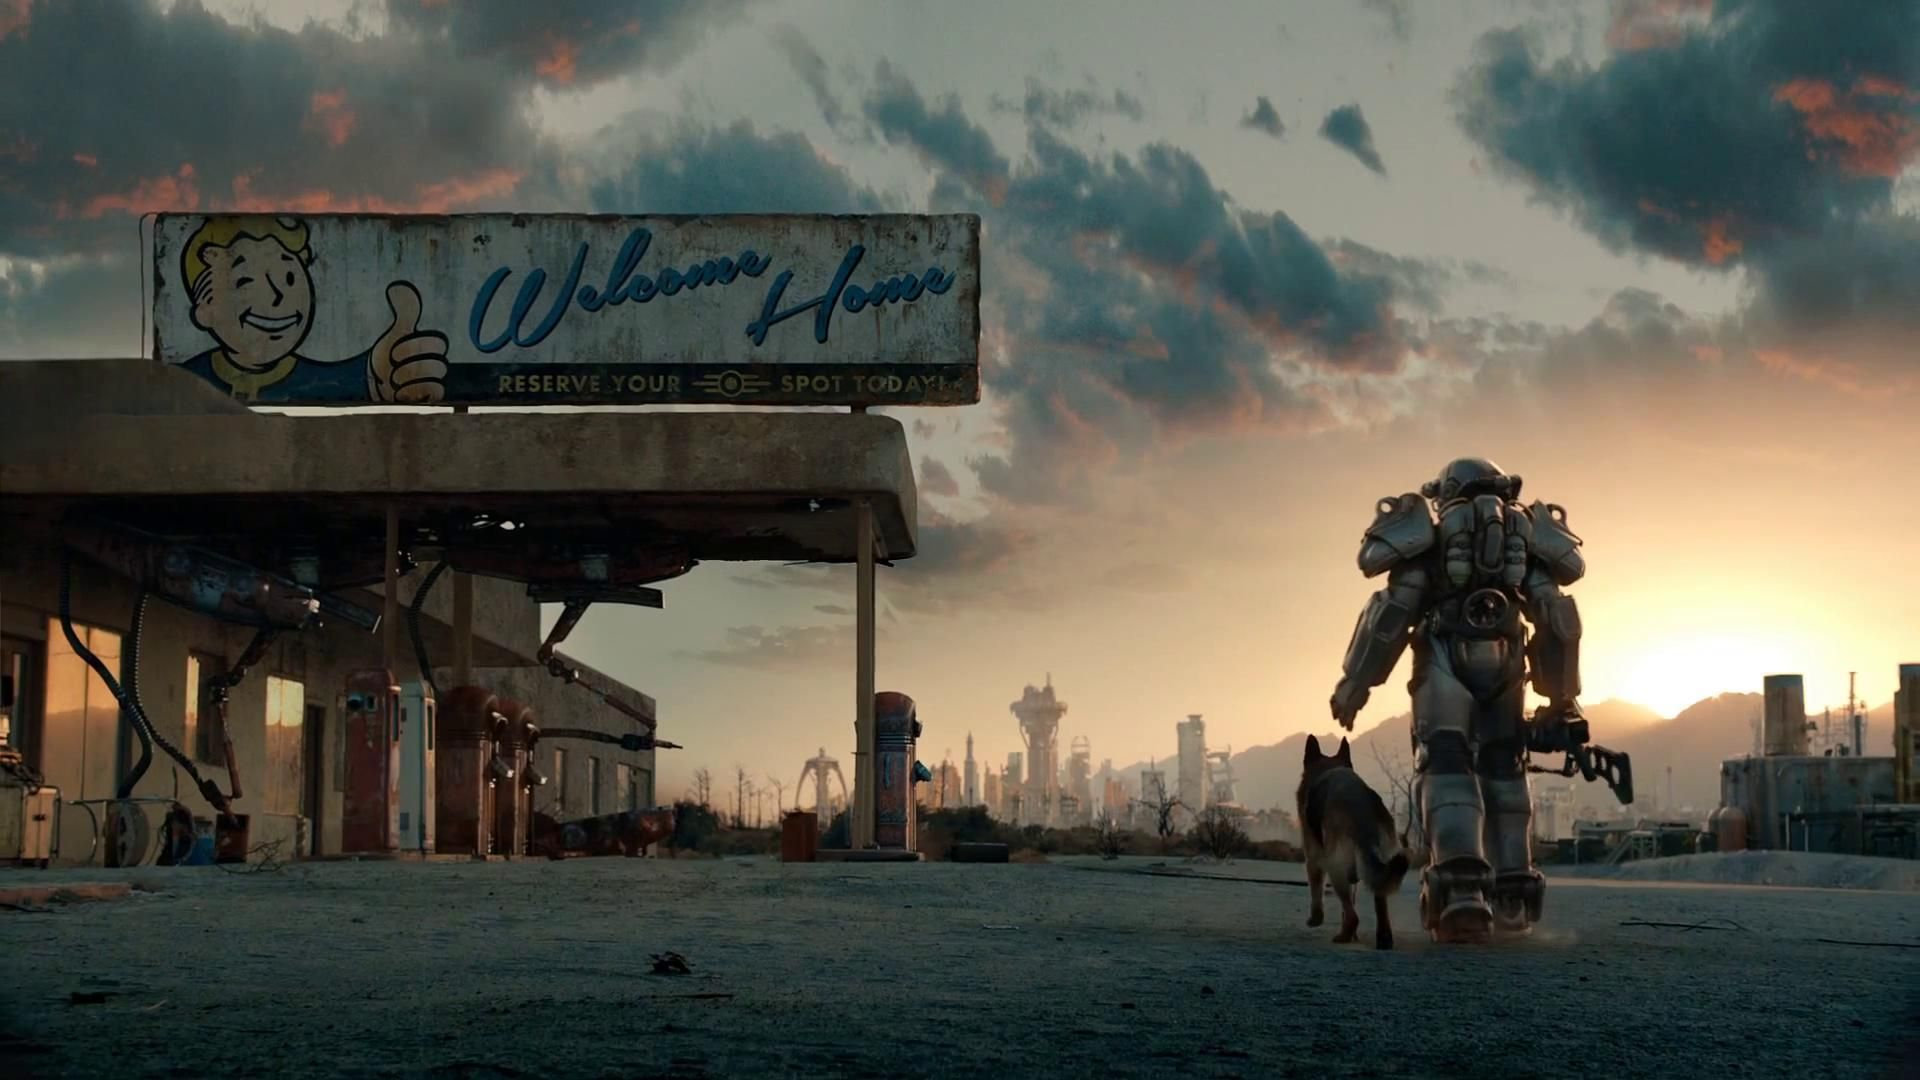 Fallout 4 Live Action Trailer Wallpaper [1920x1080] (With